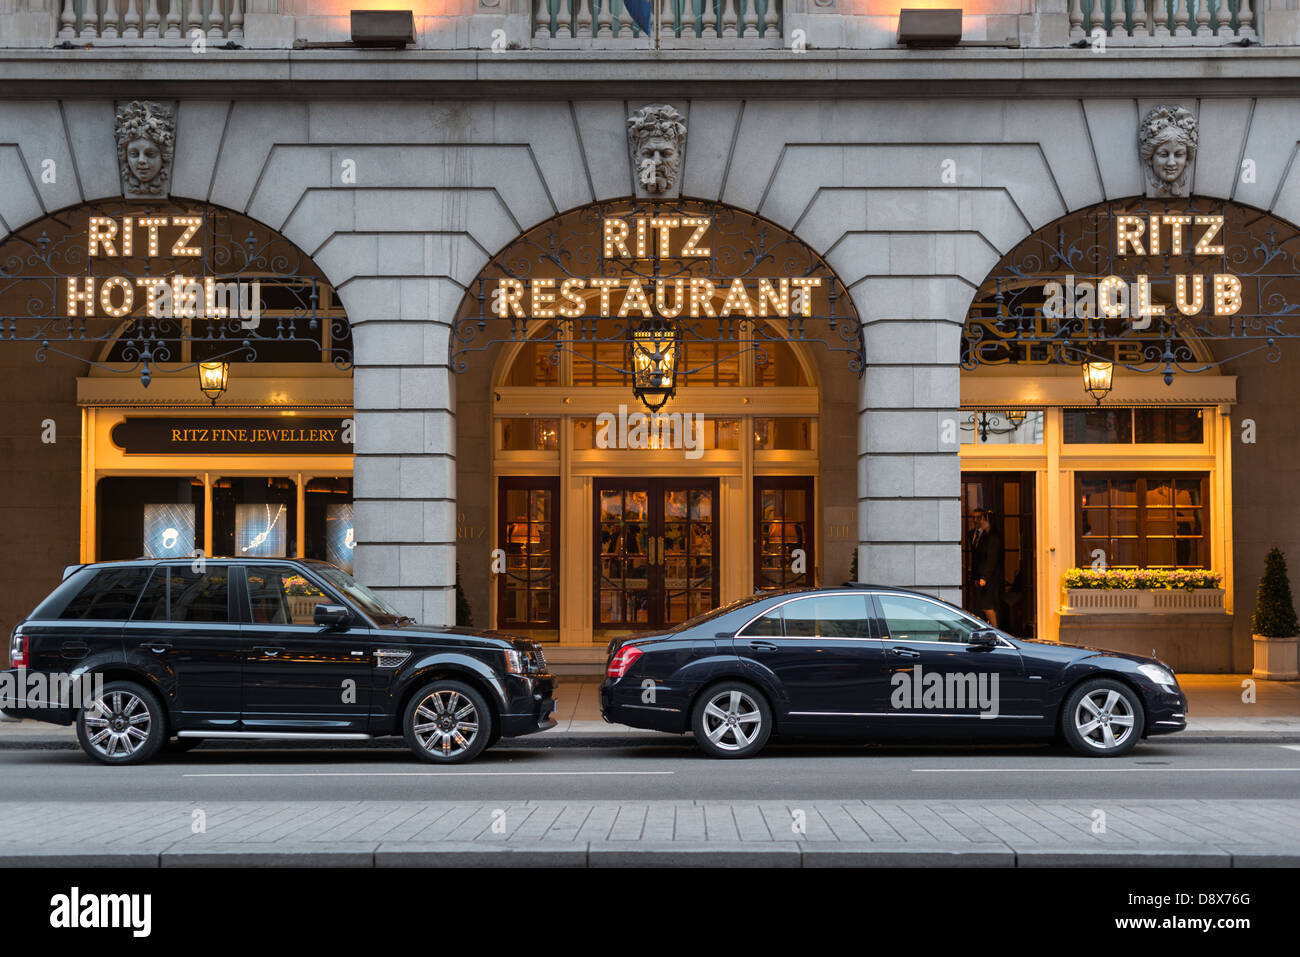 The Ritz on Piccadilly,London,England - Stock Image